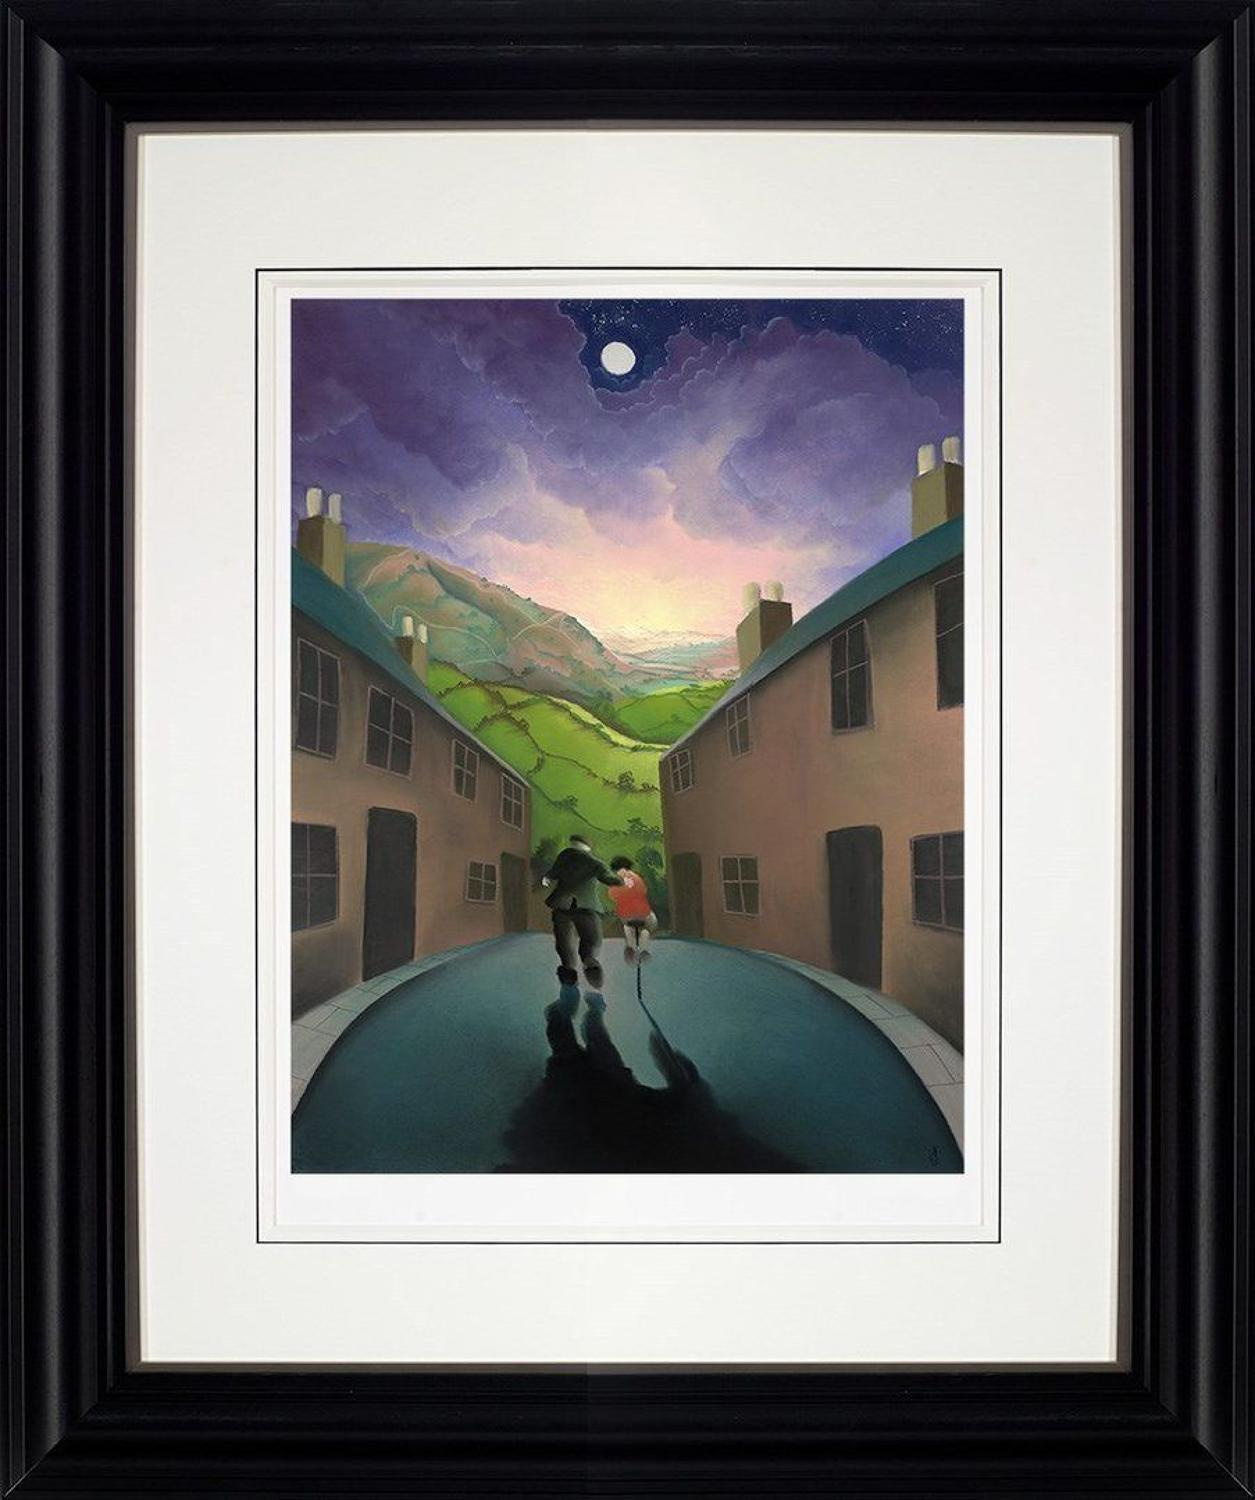 Riding With Grandad by Mackenzie Thorpe Framed Art Print.